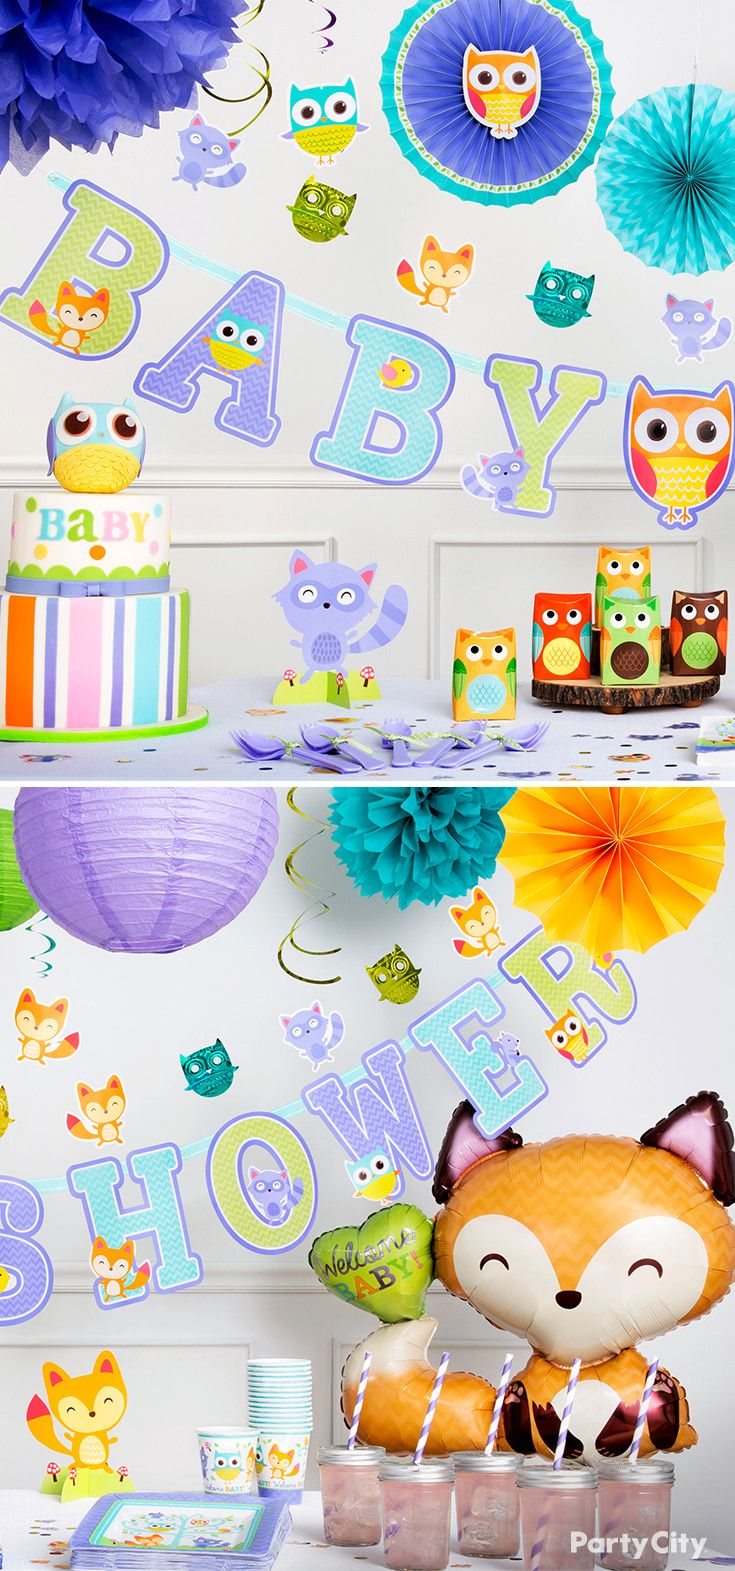 Best 20+ Party city banners ideas on Pinterest | Party city ...